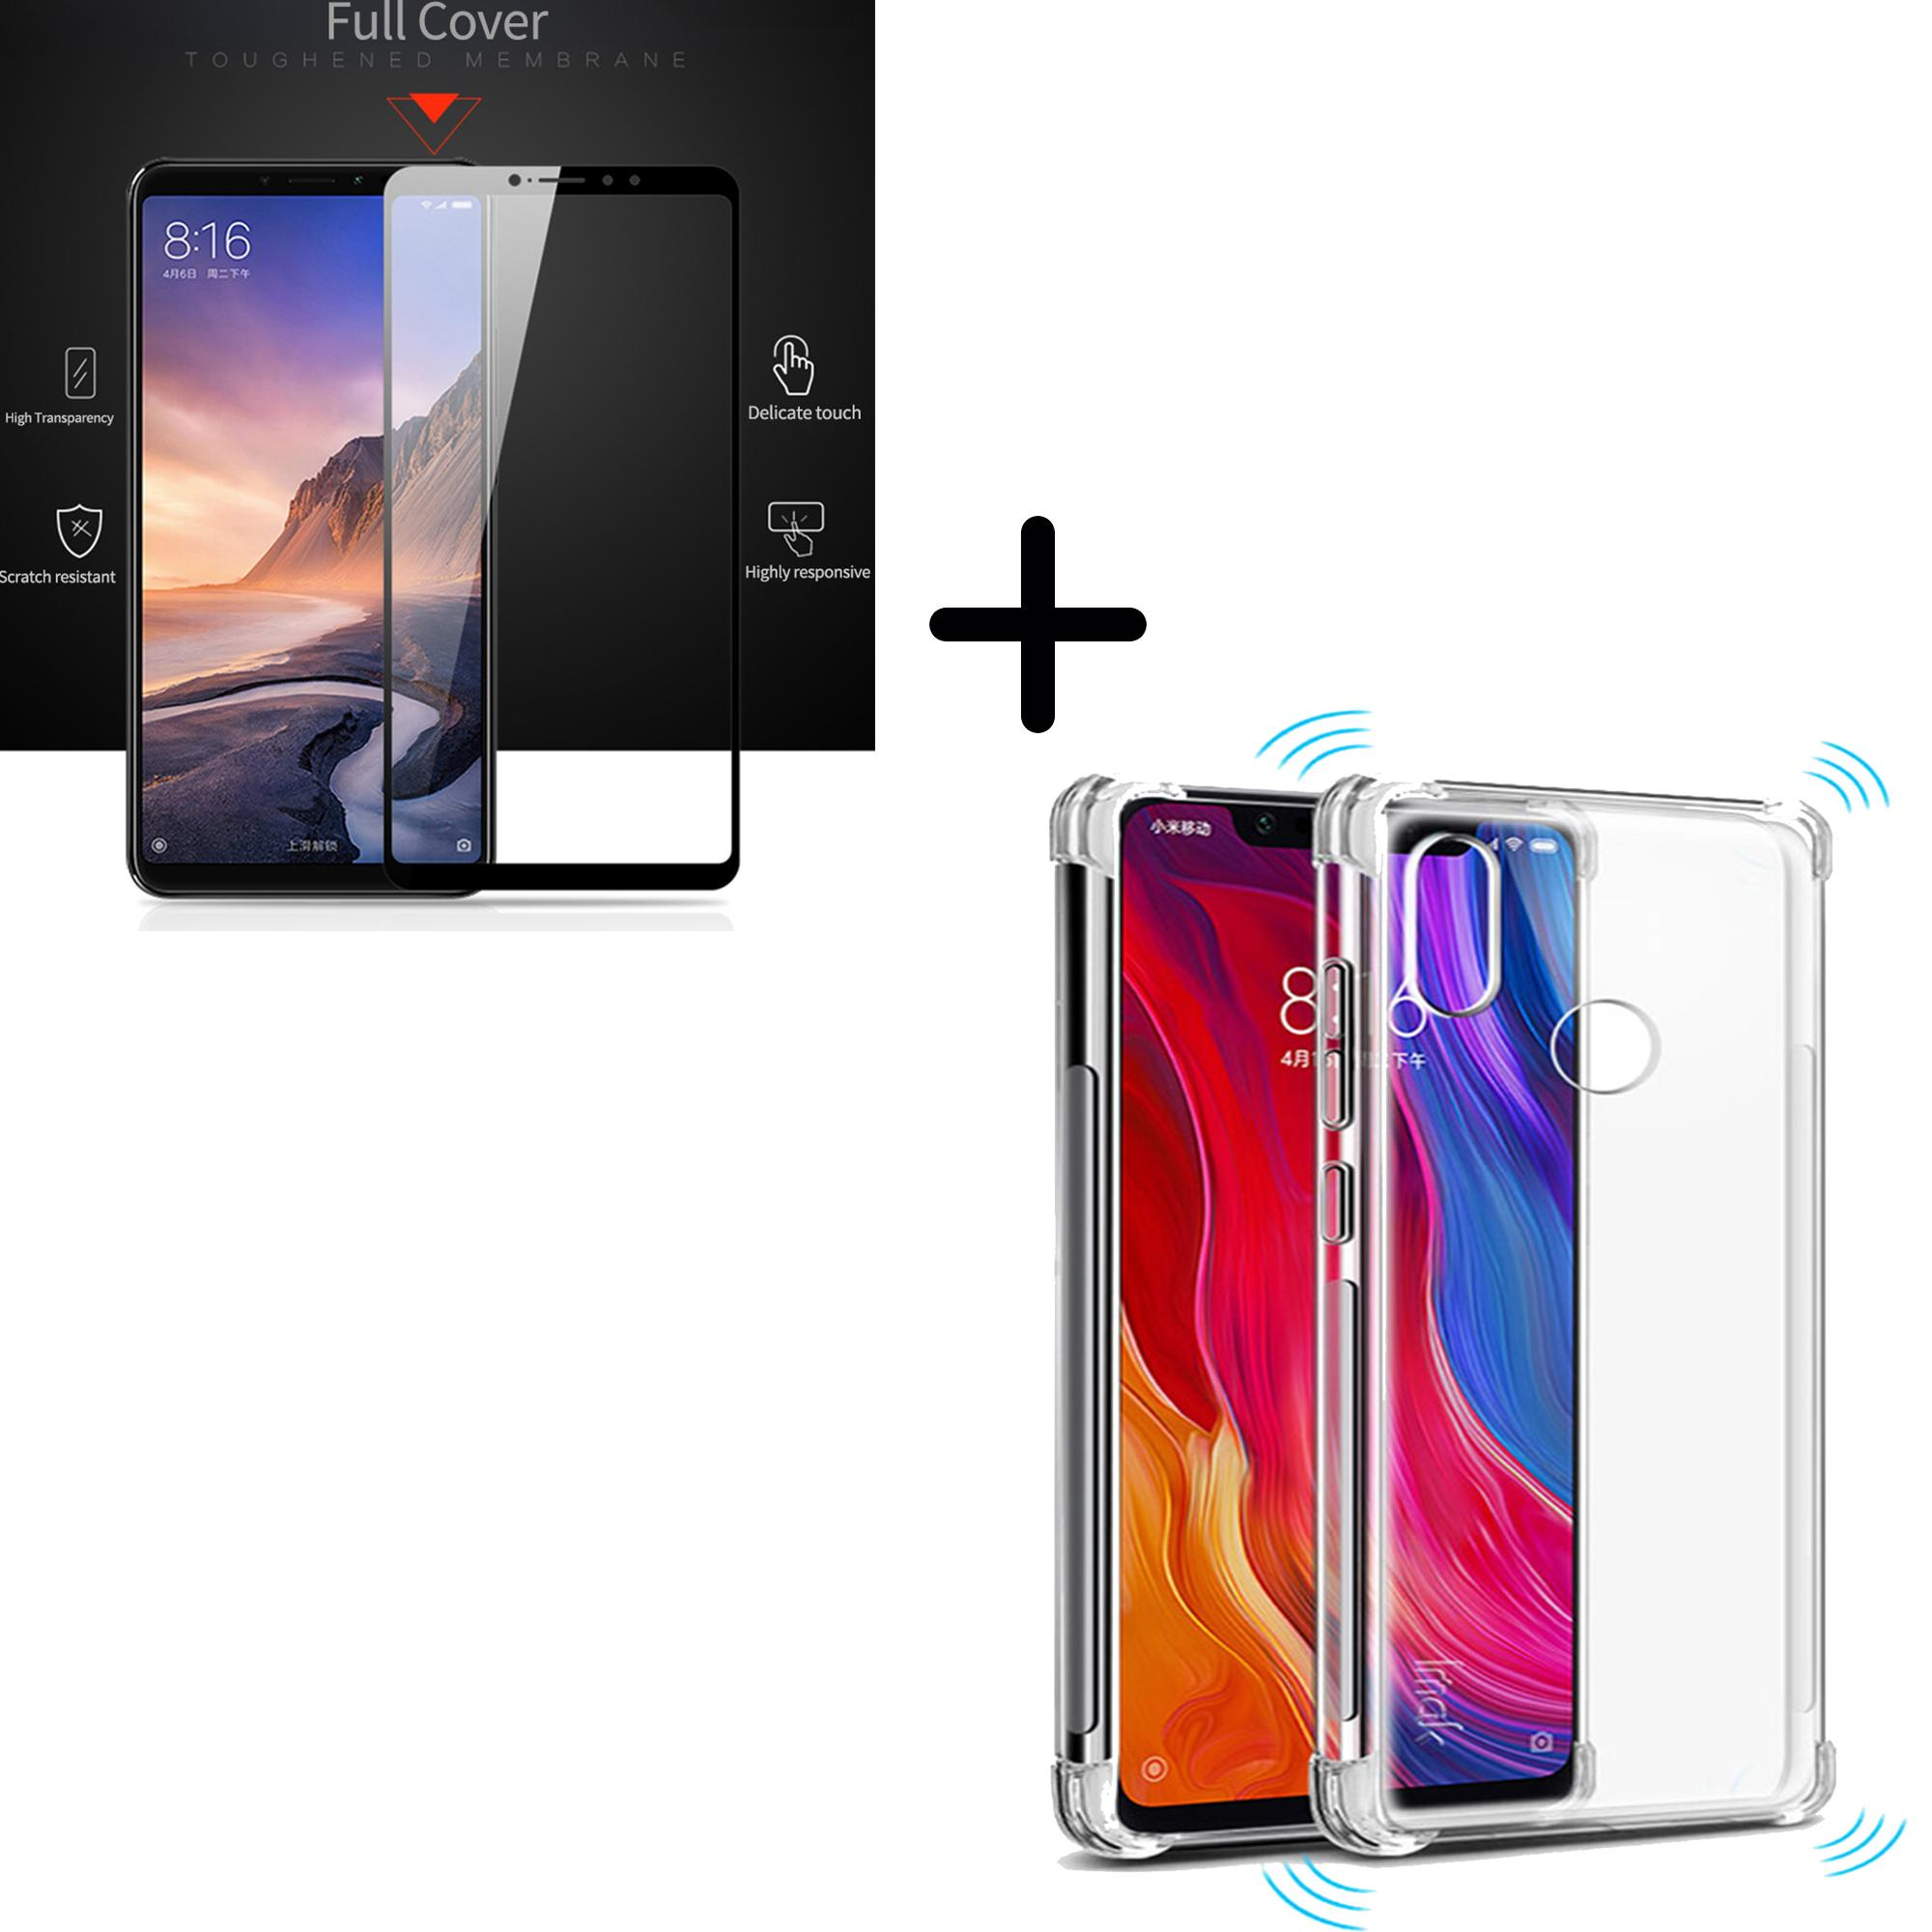 Mobopro Buy At Best Price In Pakistan Aluminium Tempered Glass Hard Case For Xiaomi Redmi 2 Black Gold Mi Max 3 Full Coverage 25d Screen Protector With Anti Knock